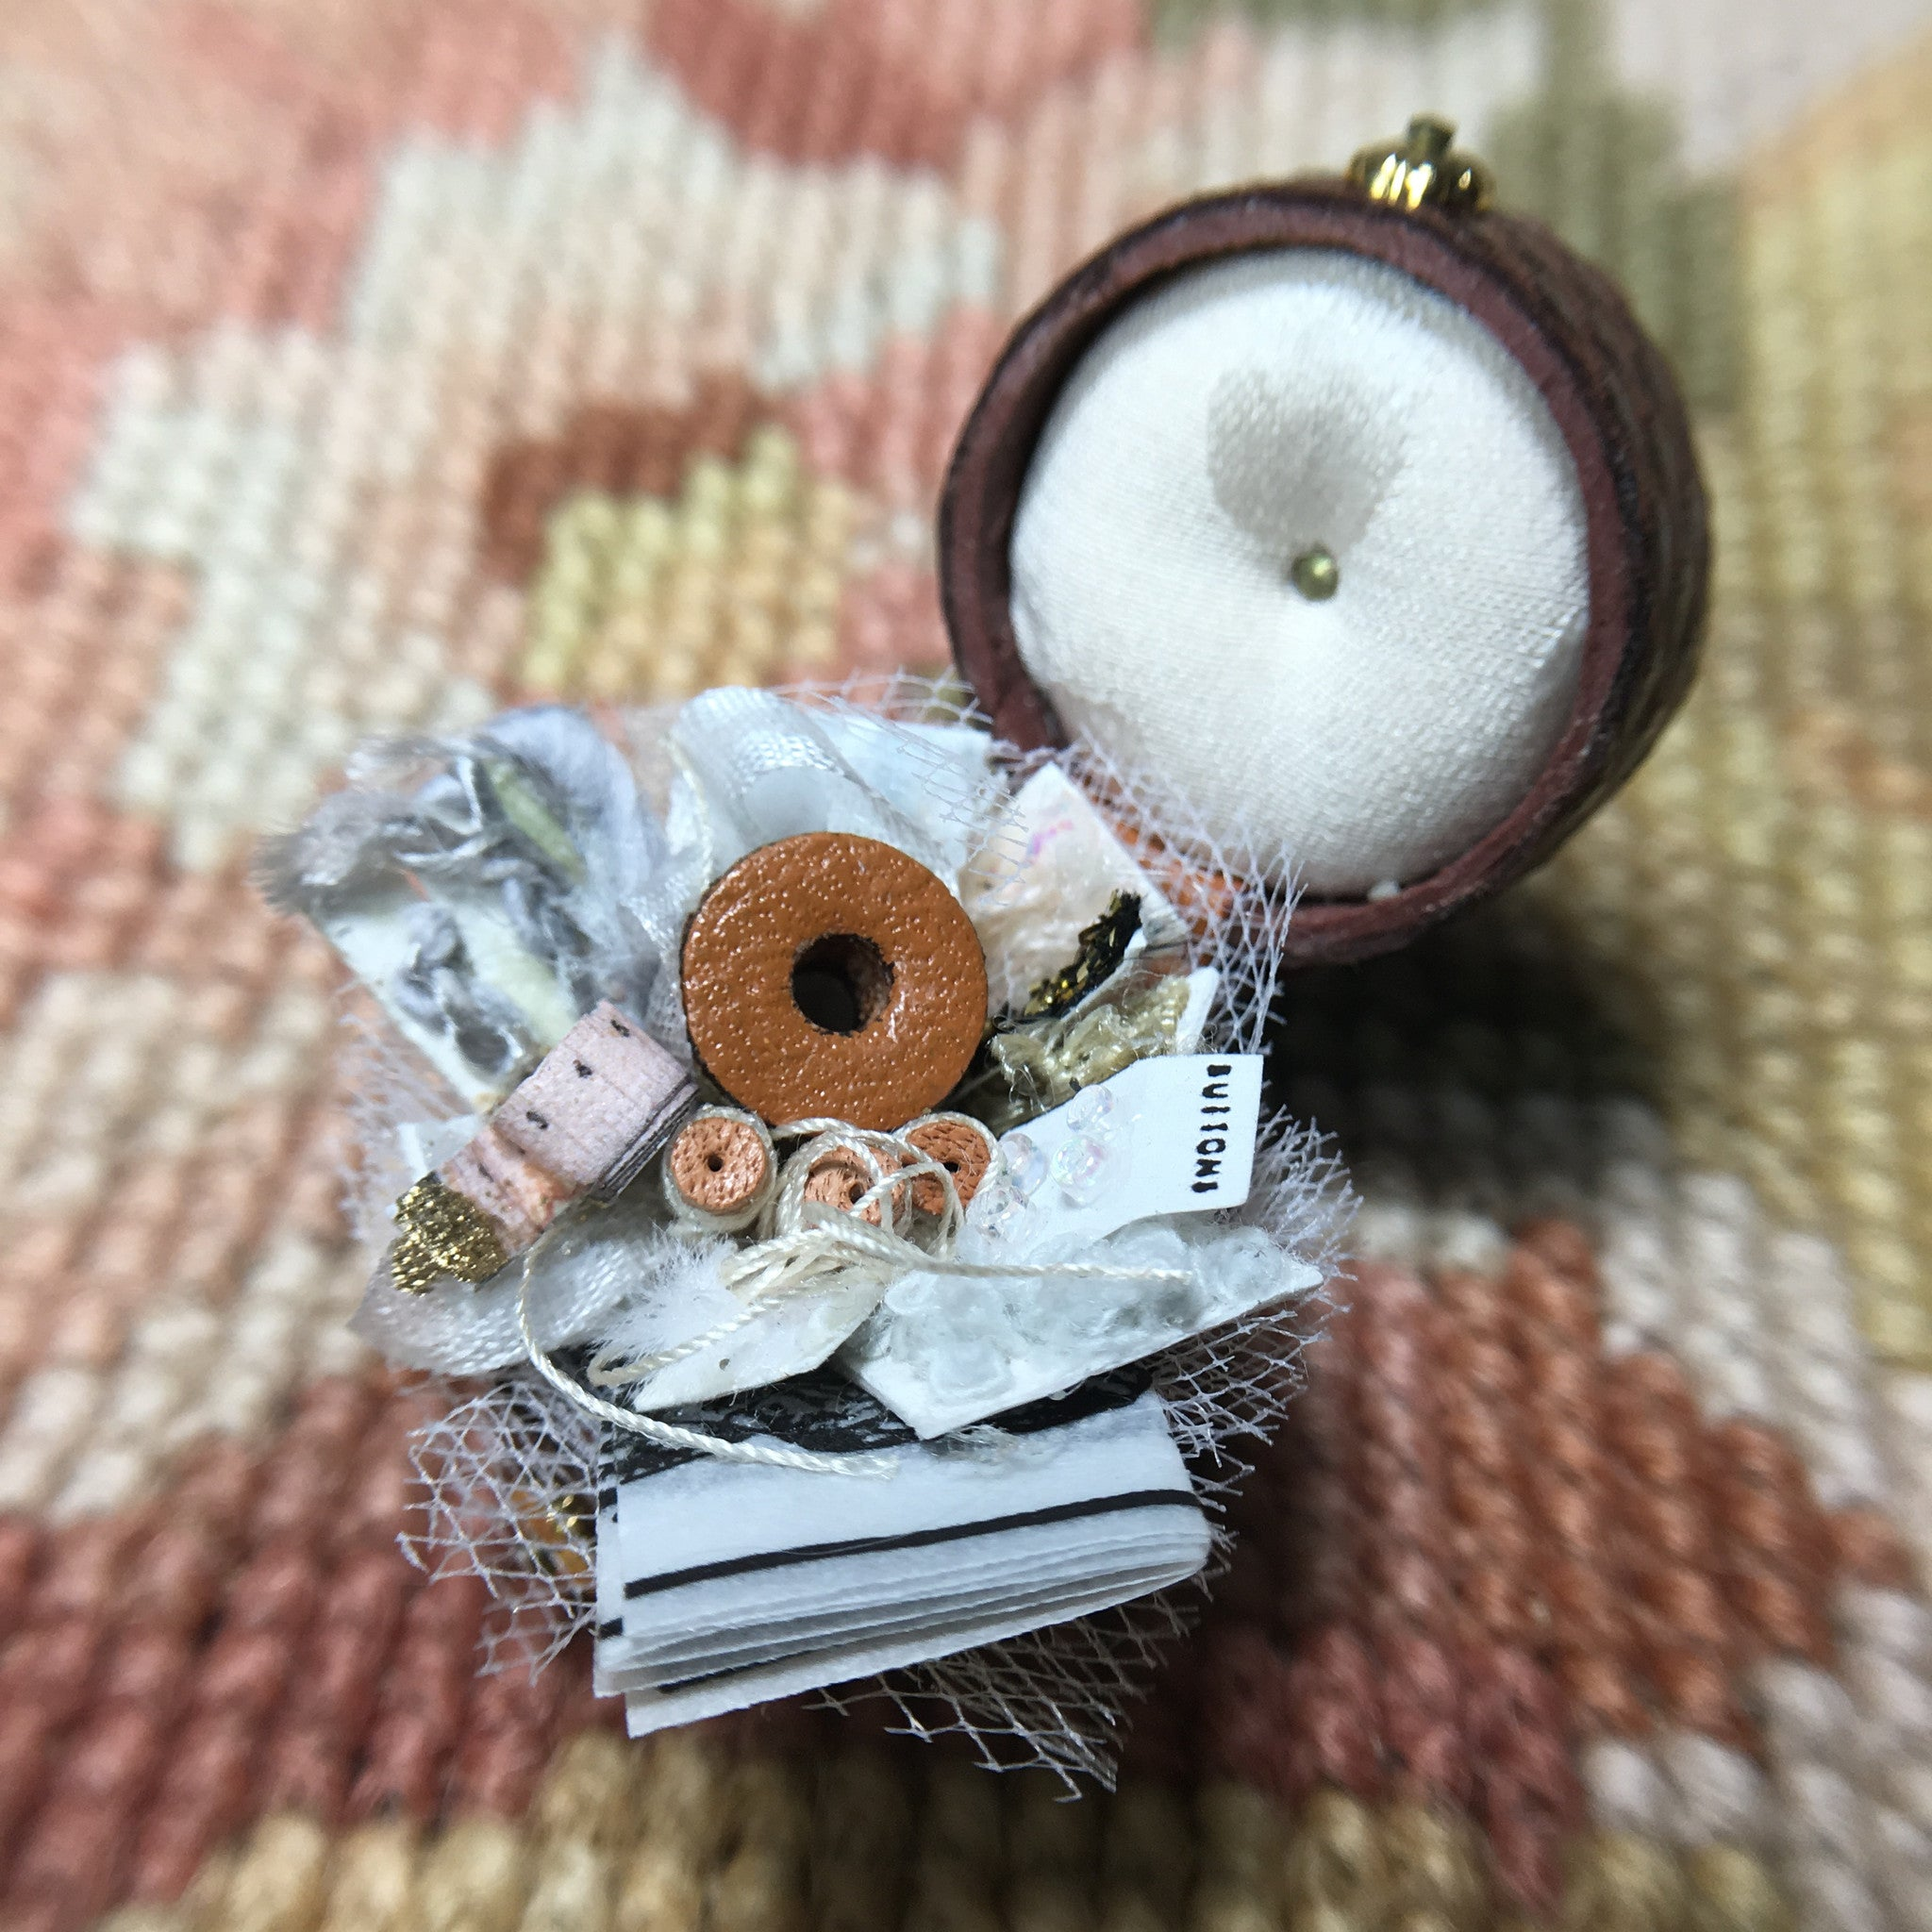 Sewing Box With Sewing Accessories 1:12 Dollhouse Miniature